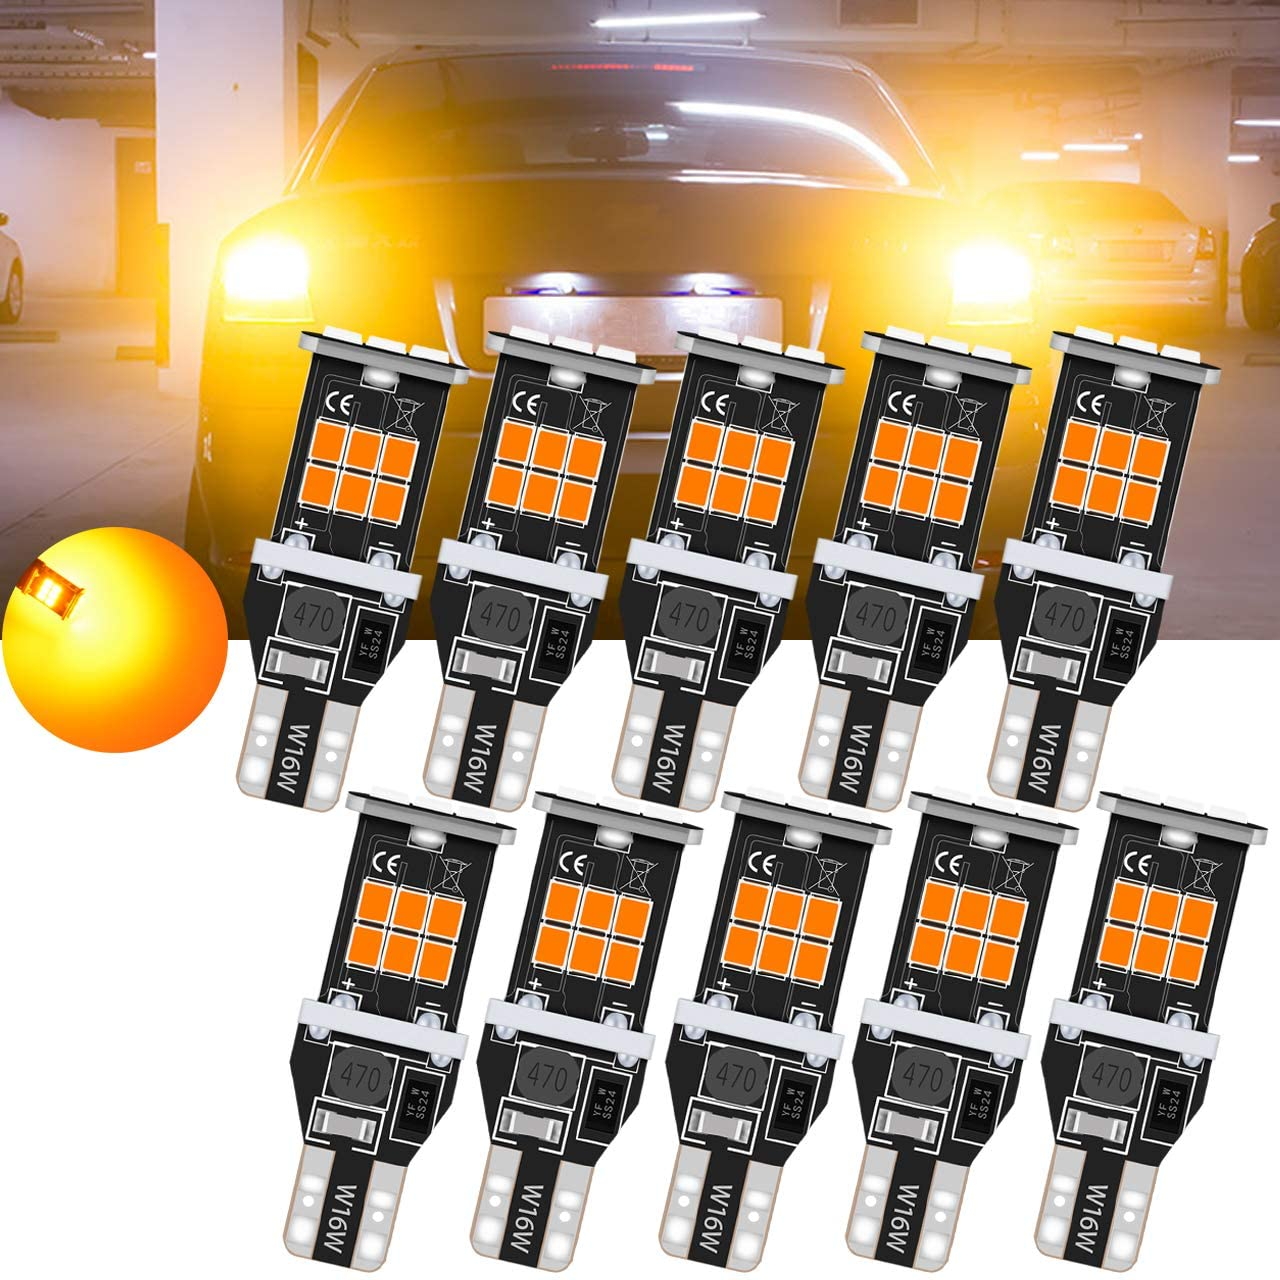 TUINCYN T15 912 921 LED Backup Reverse Light Bulbs Amber Yellow CANBUS Error Free Extremely Bright W16W 906 2835 Back Up Light 2835 15SMD Wedge LED Backing Up Light Bulb(Pack of 10)